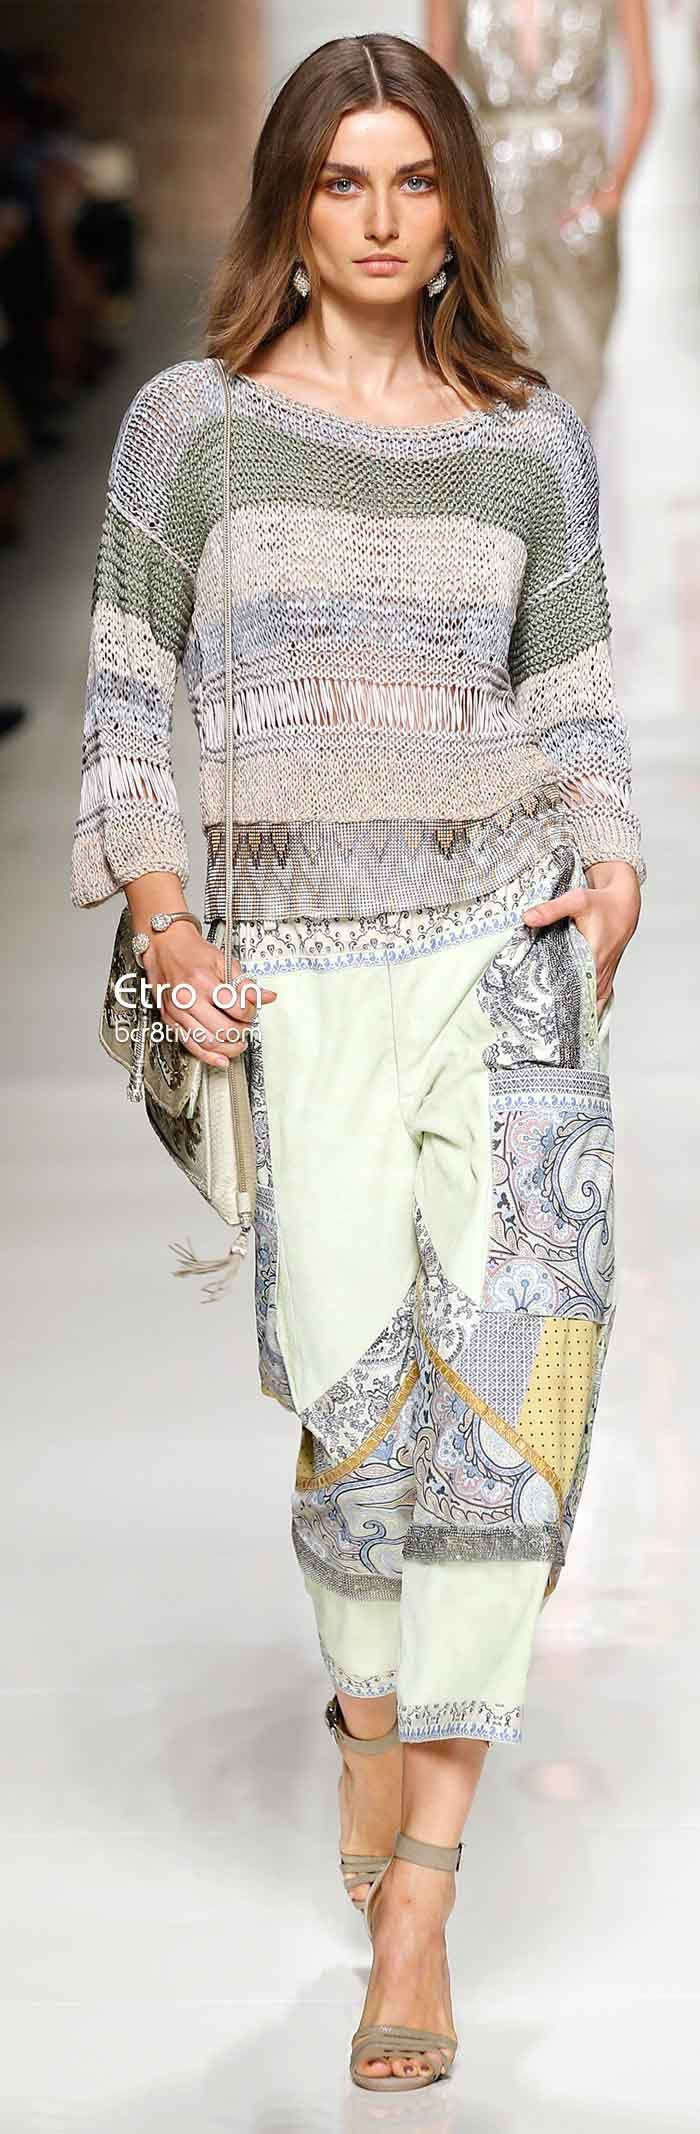 Etro Spring 2014 Collection. Boho chic a la Etro, spot on...#bohochic#etro#paisley